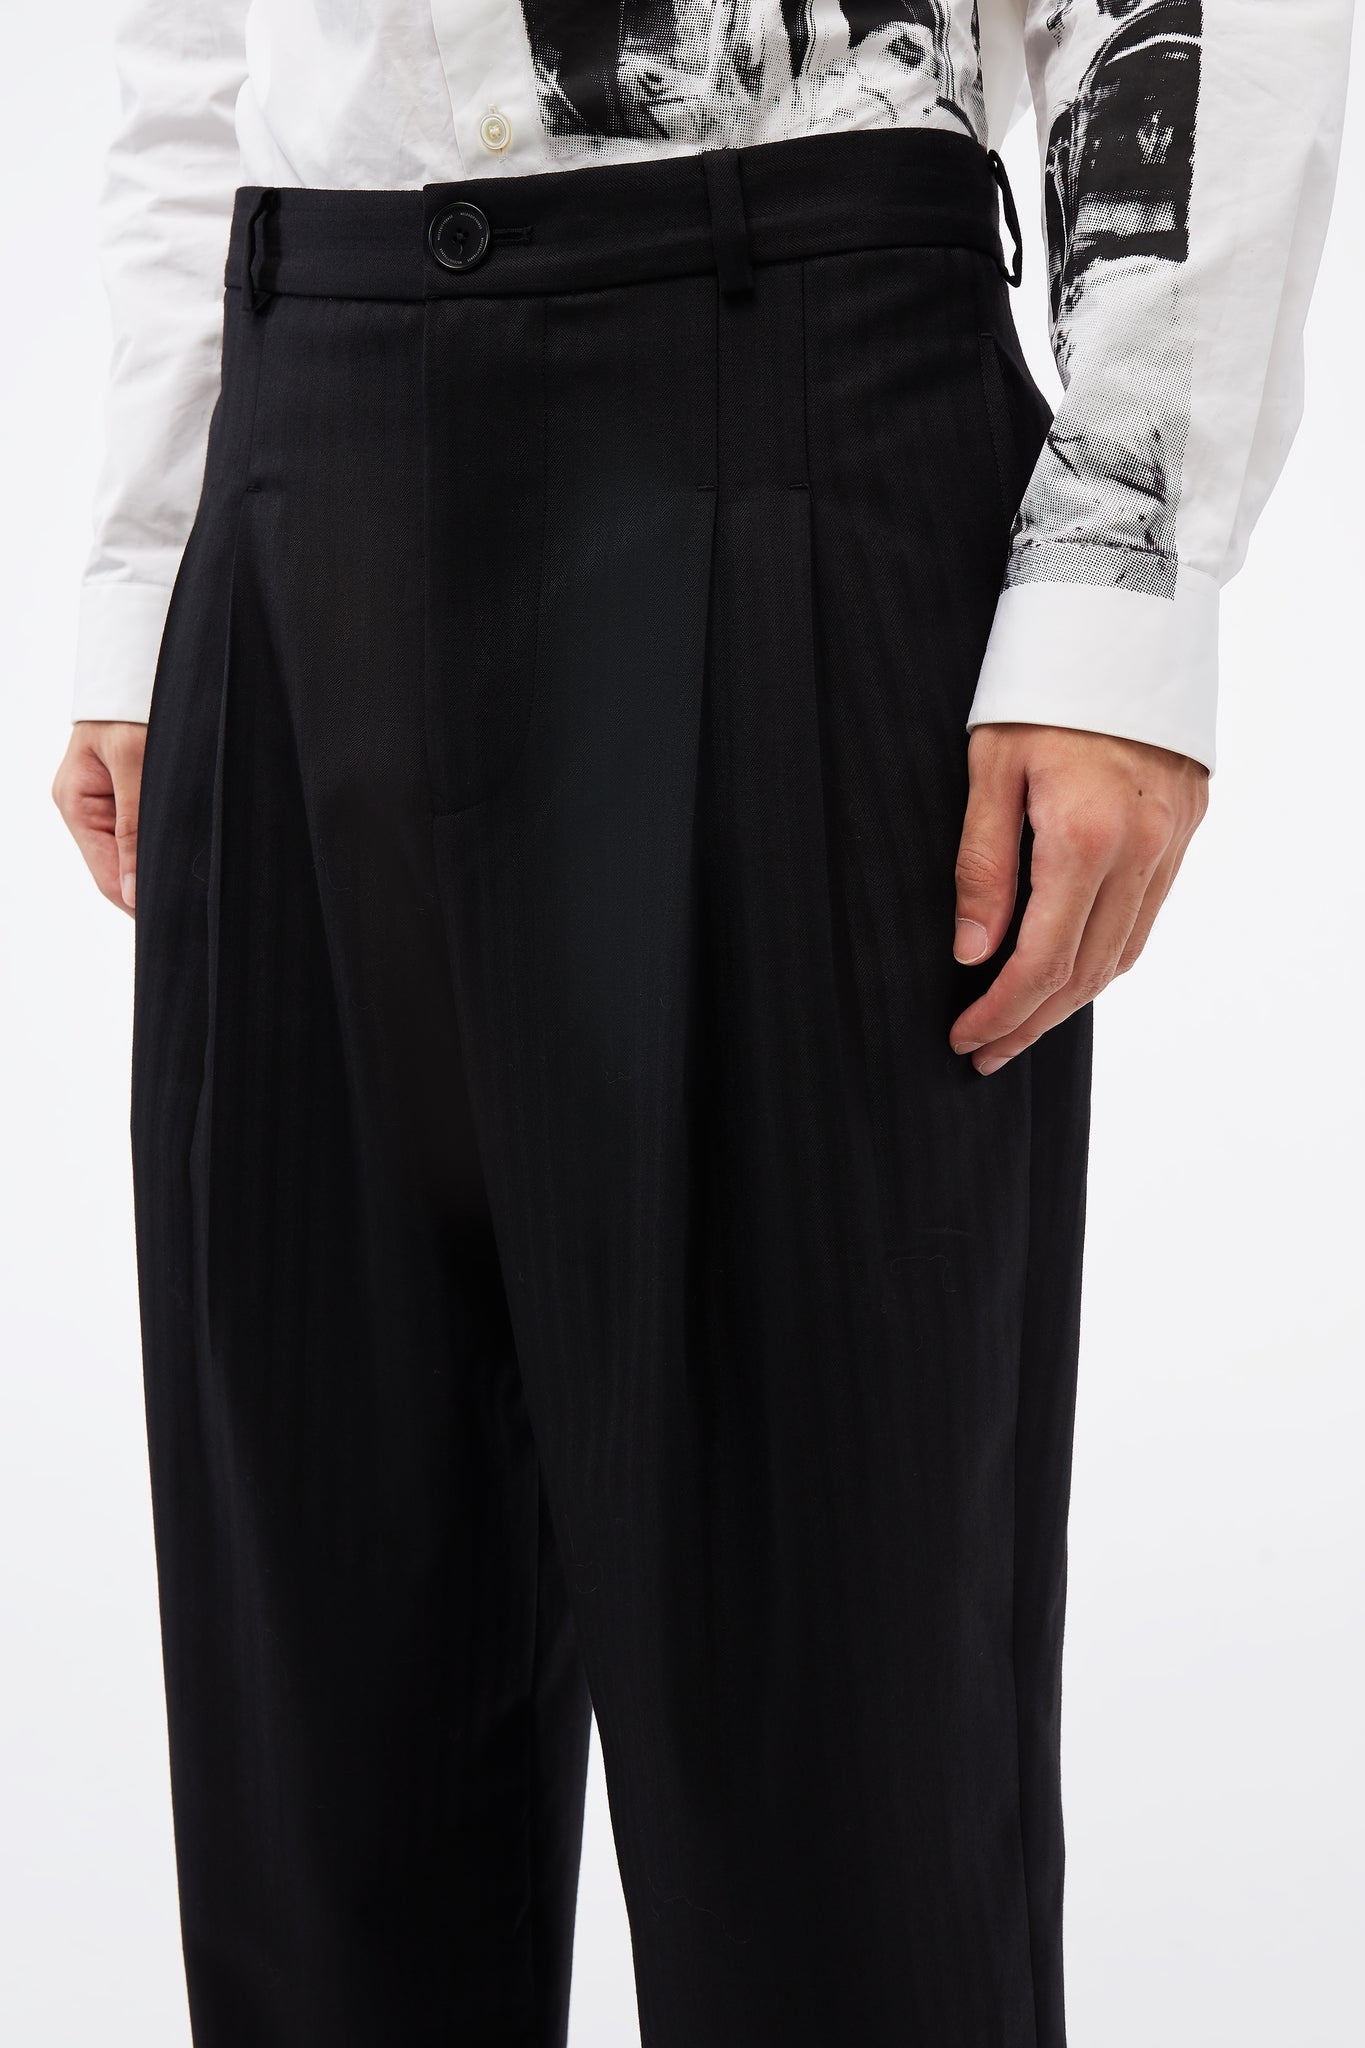 Mich Pleats Straight Splittable Trouser Dry Onyx Muted Stripe